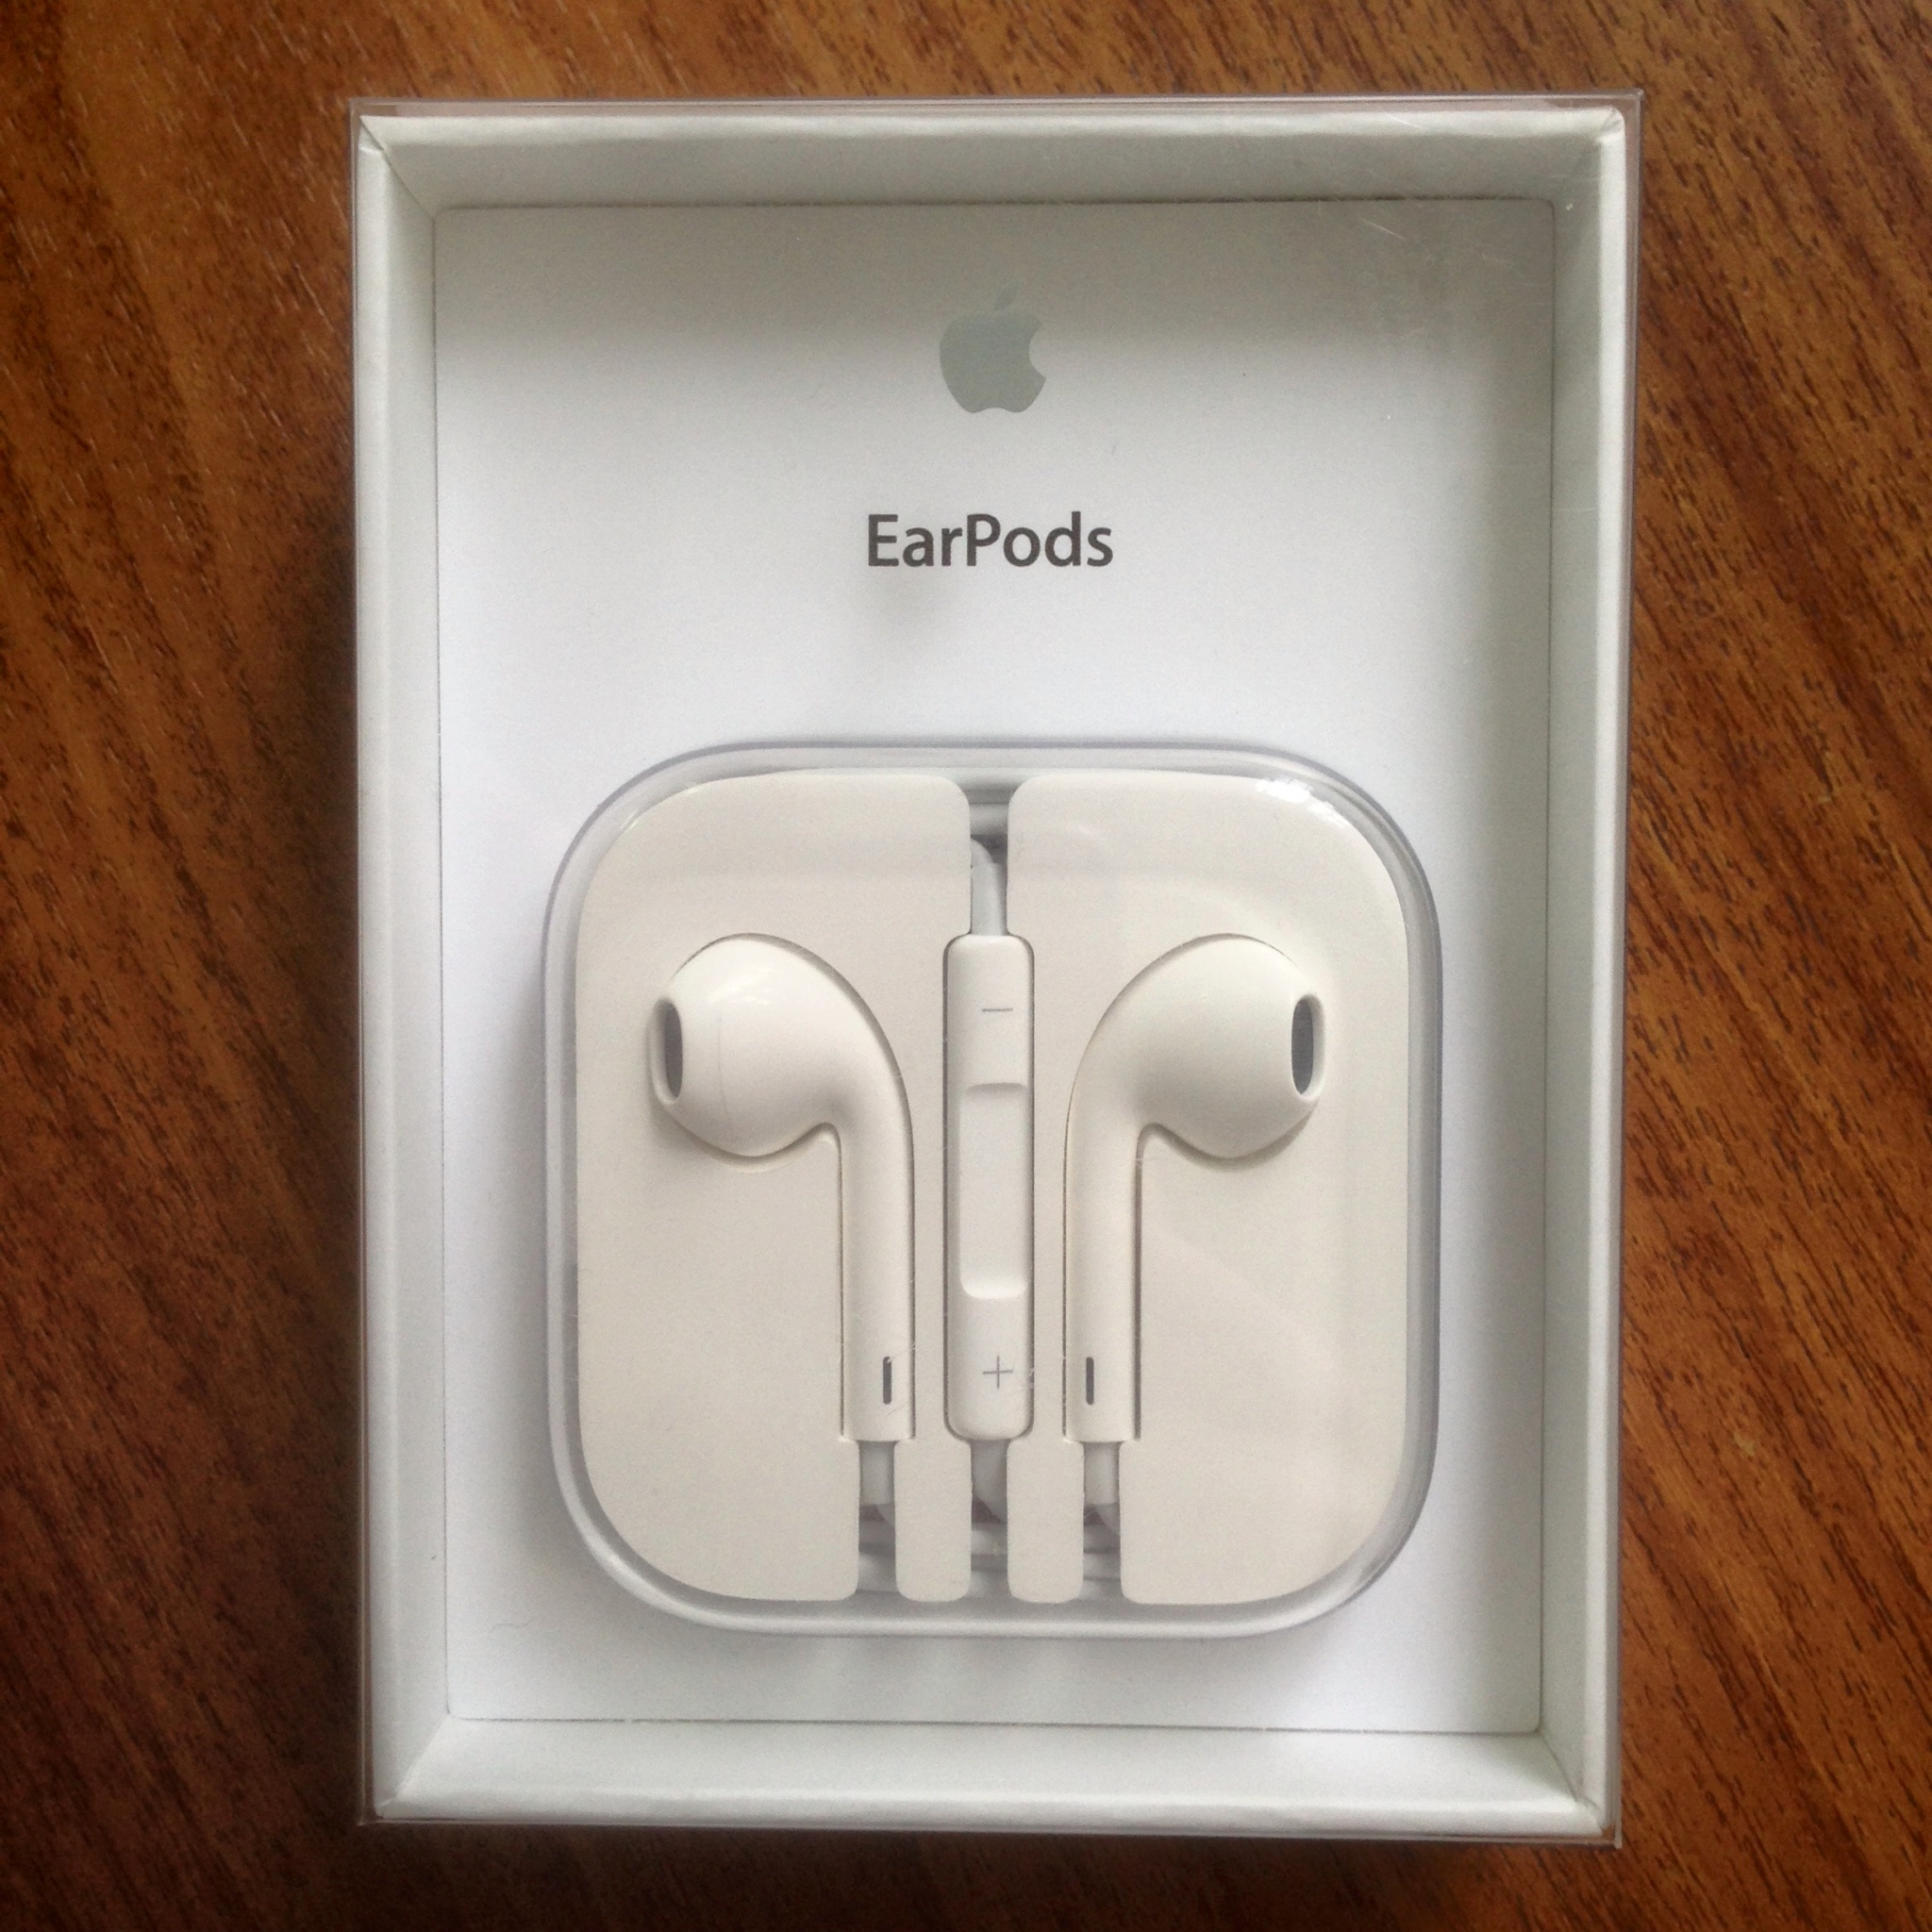 Обзор на Наушники Apple EarPods with Remote and Mic (MD827ZM A) -  изображение e711a3d2c4501